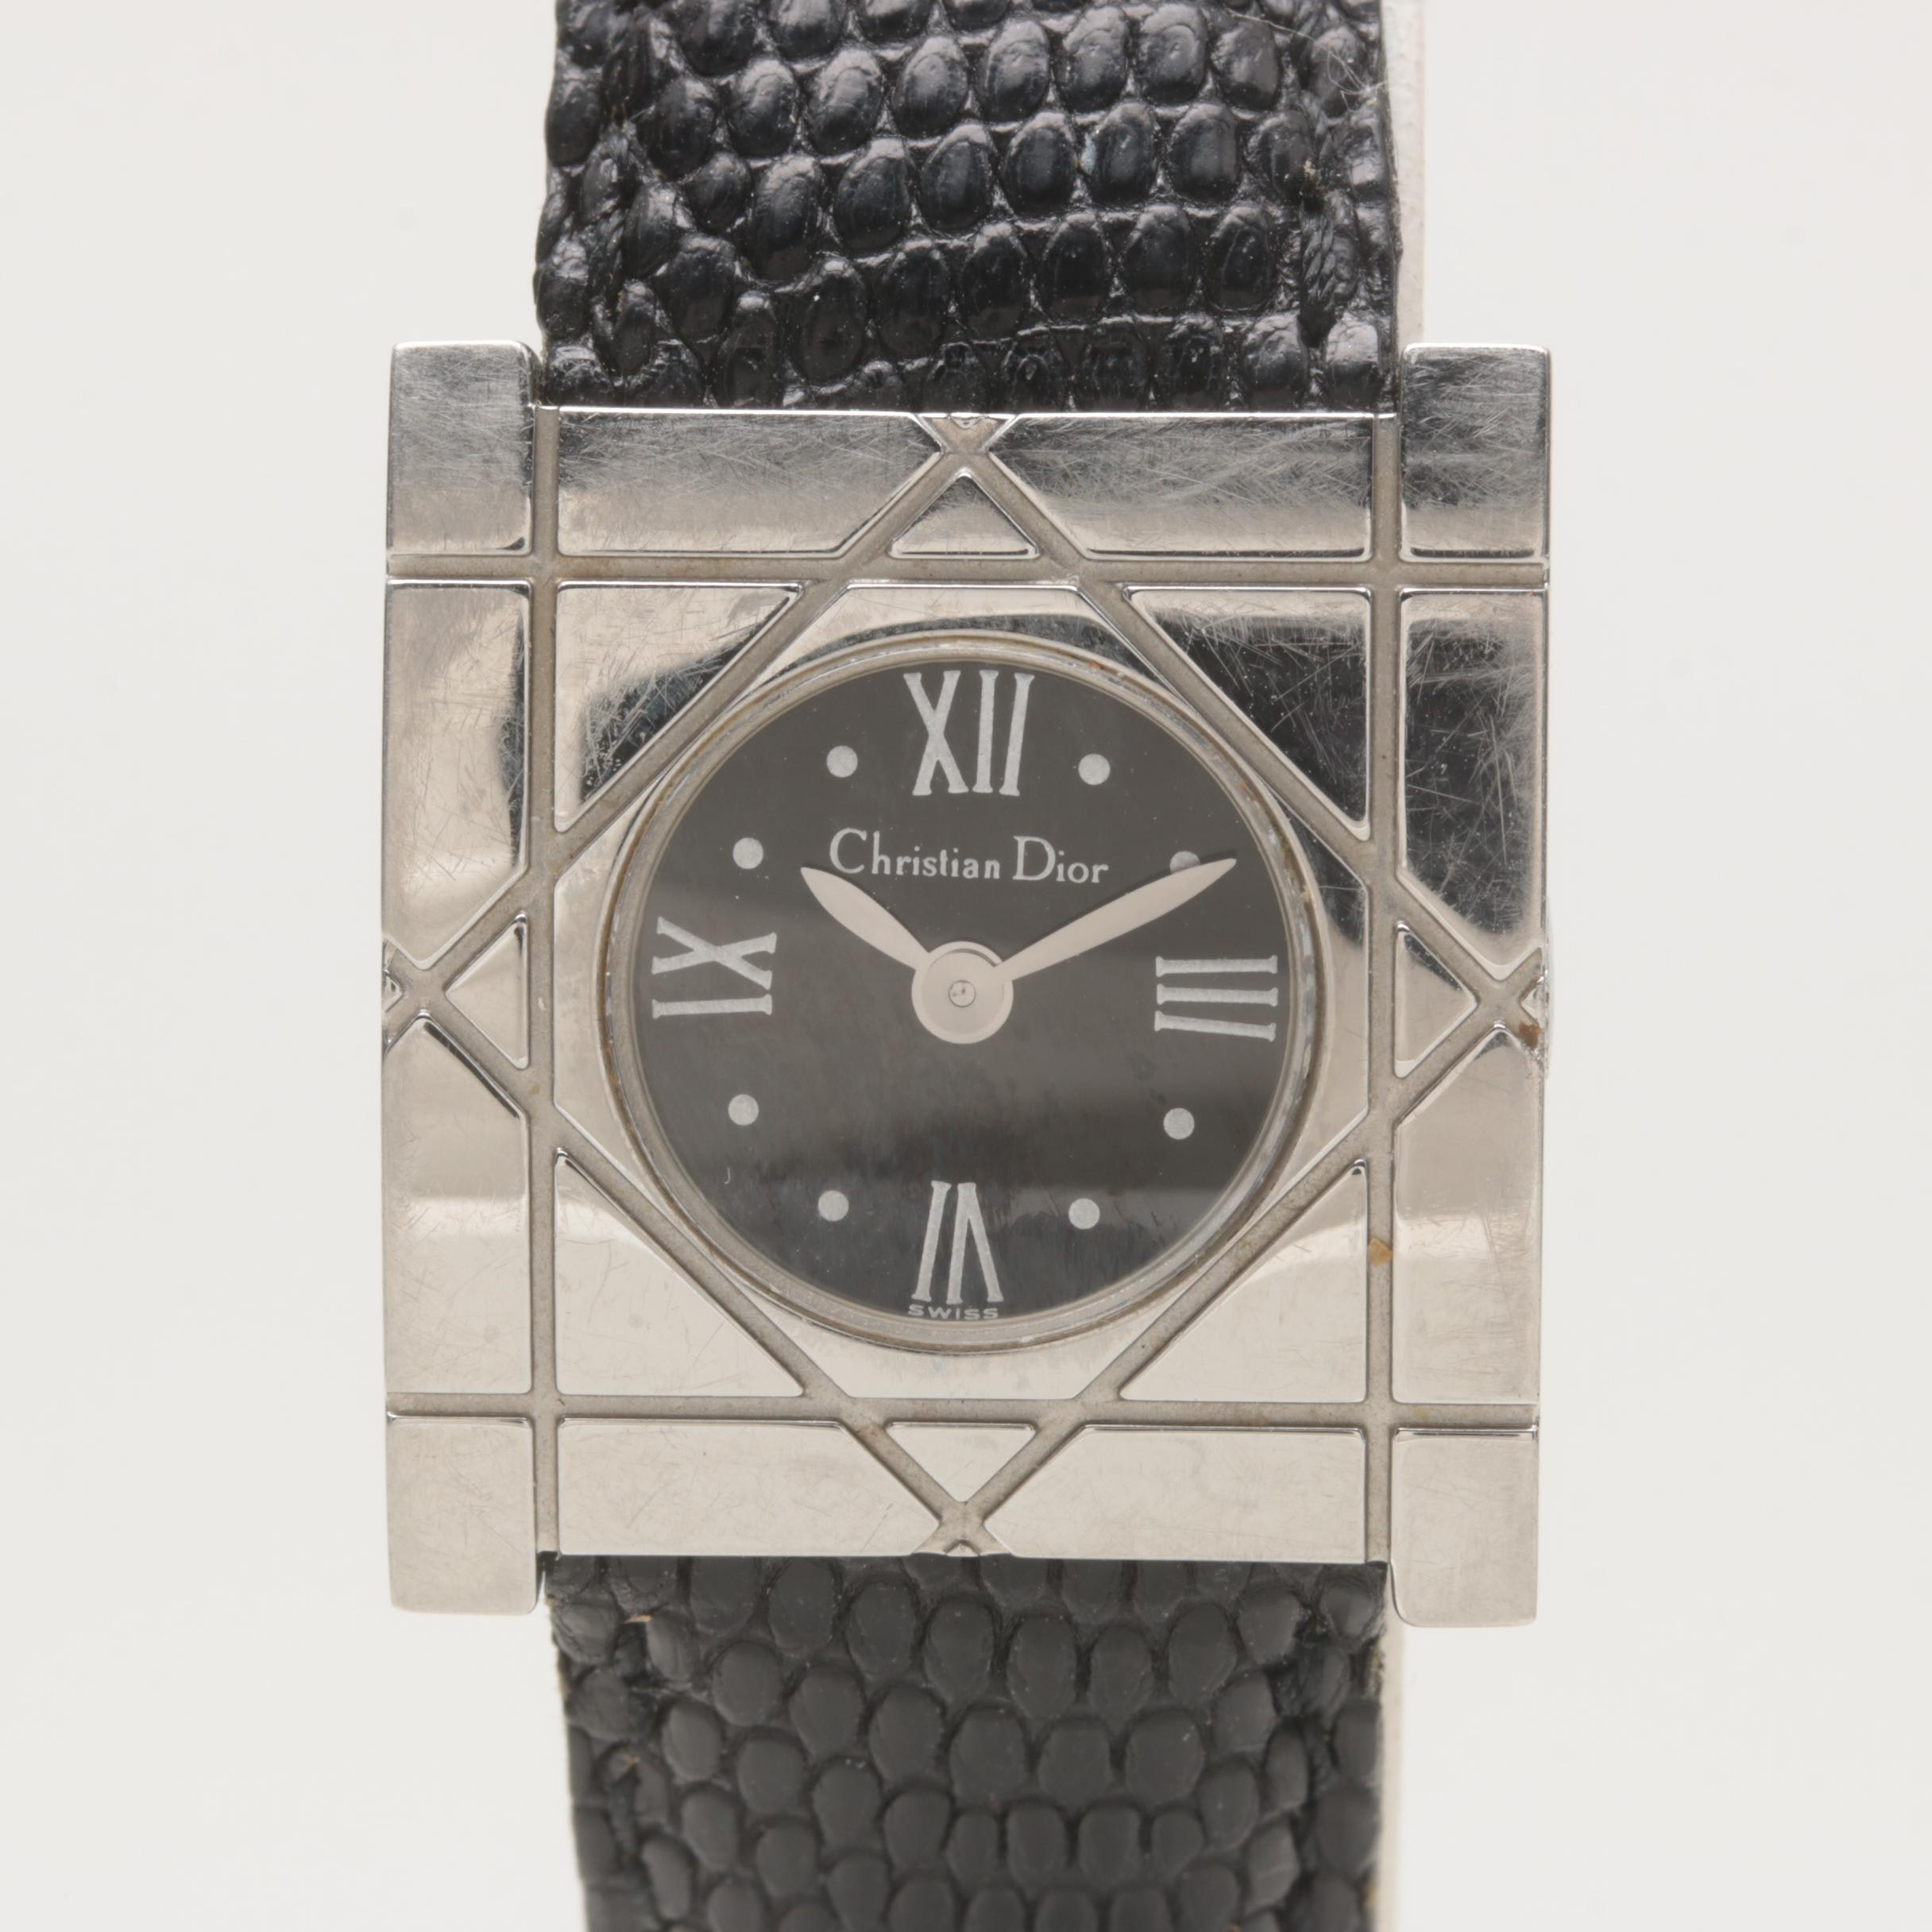 Christian Dior Stainless Steel Wristwatch with Box